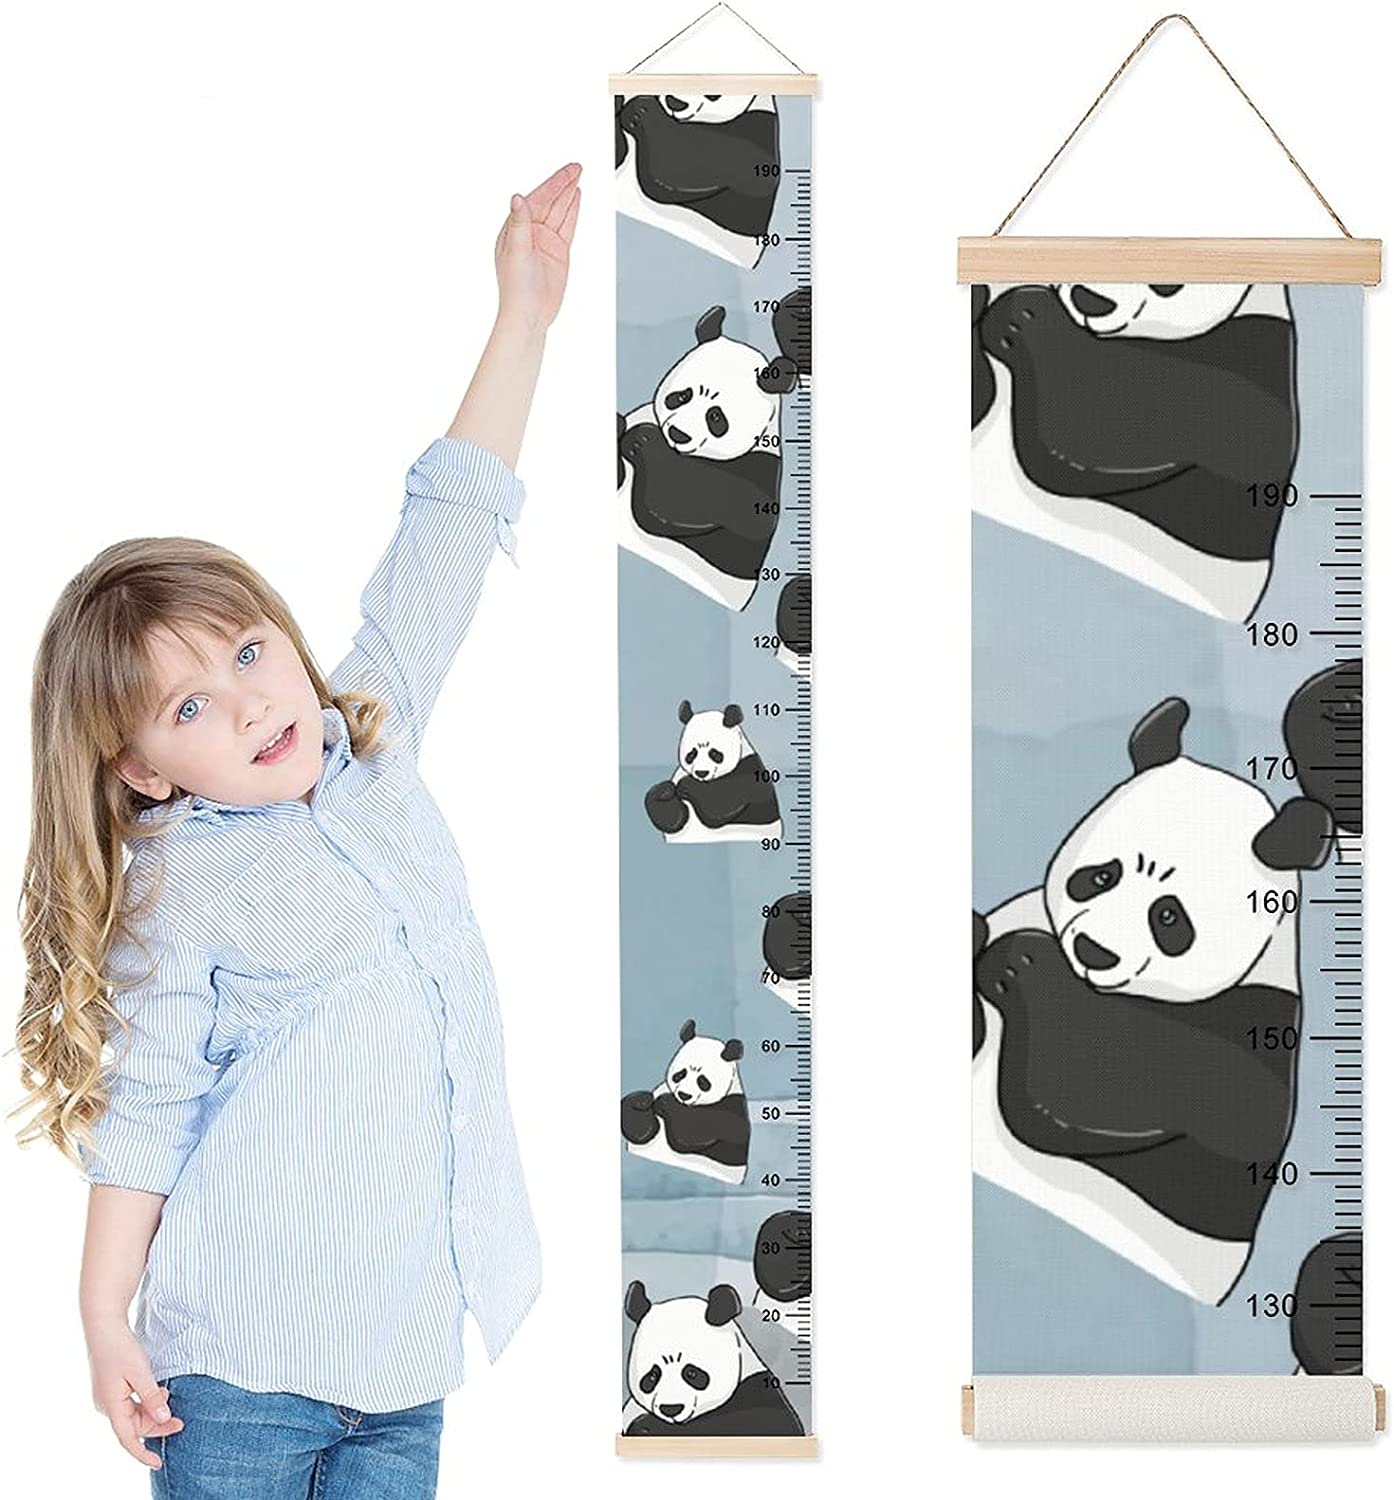 DKISEE Baby Over item handling Growth Chart Raleigh Mall Child f Height Wall Ruler Hanging